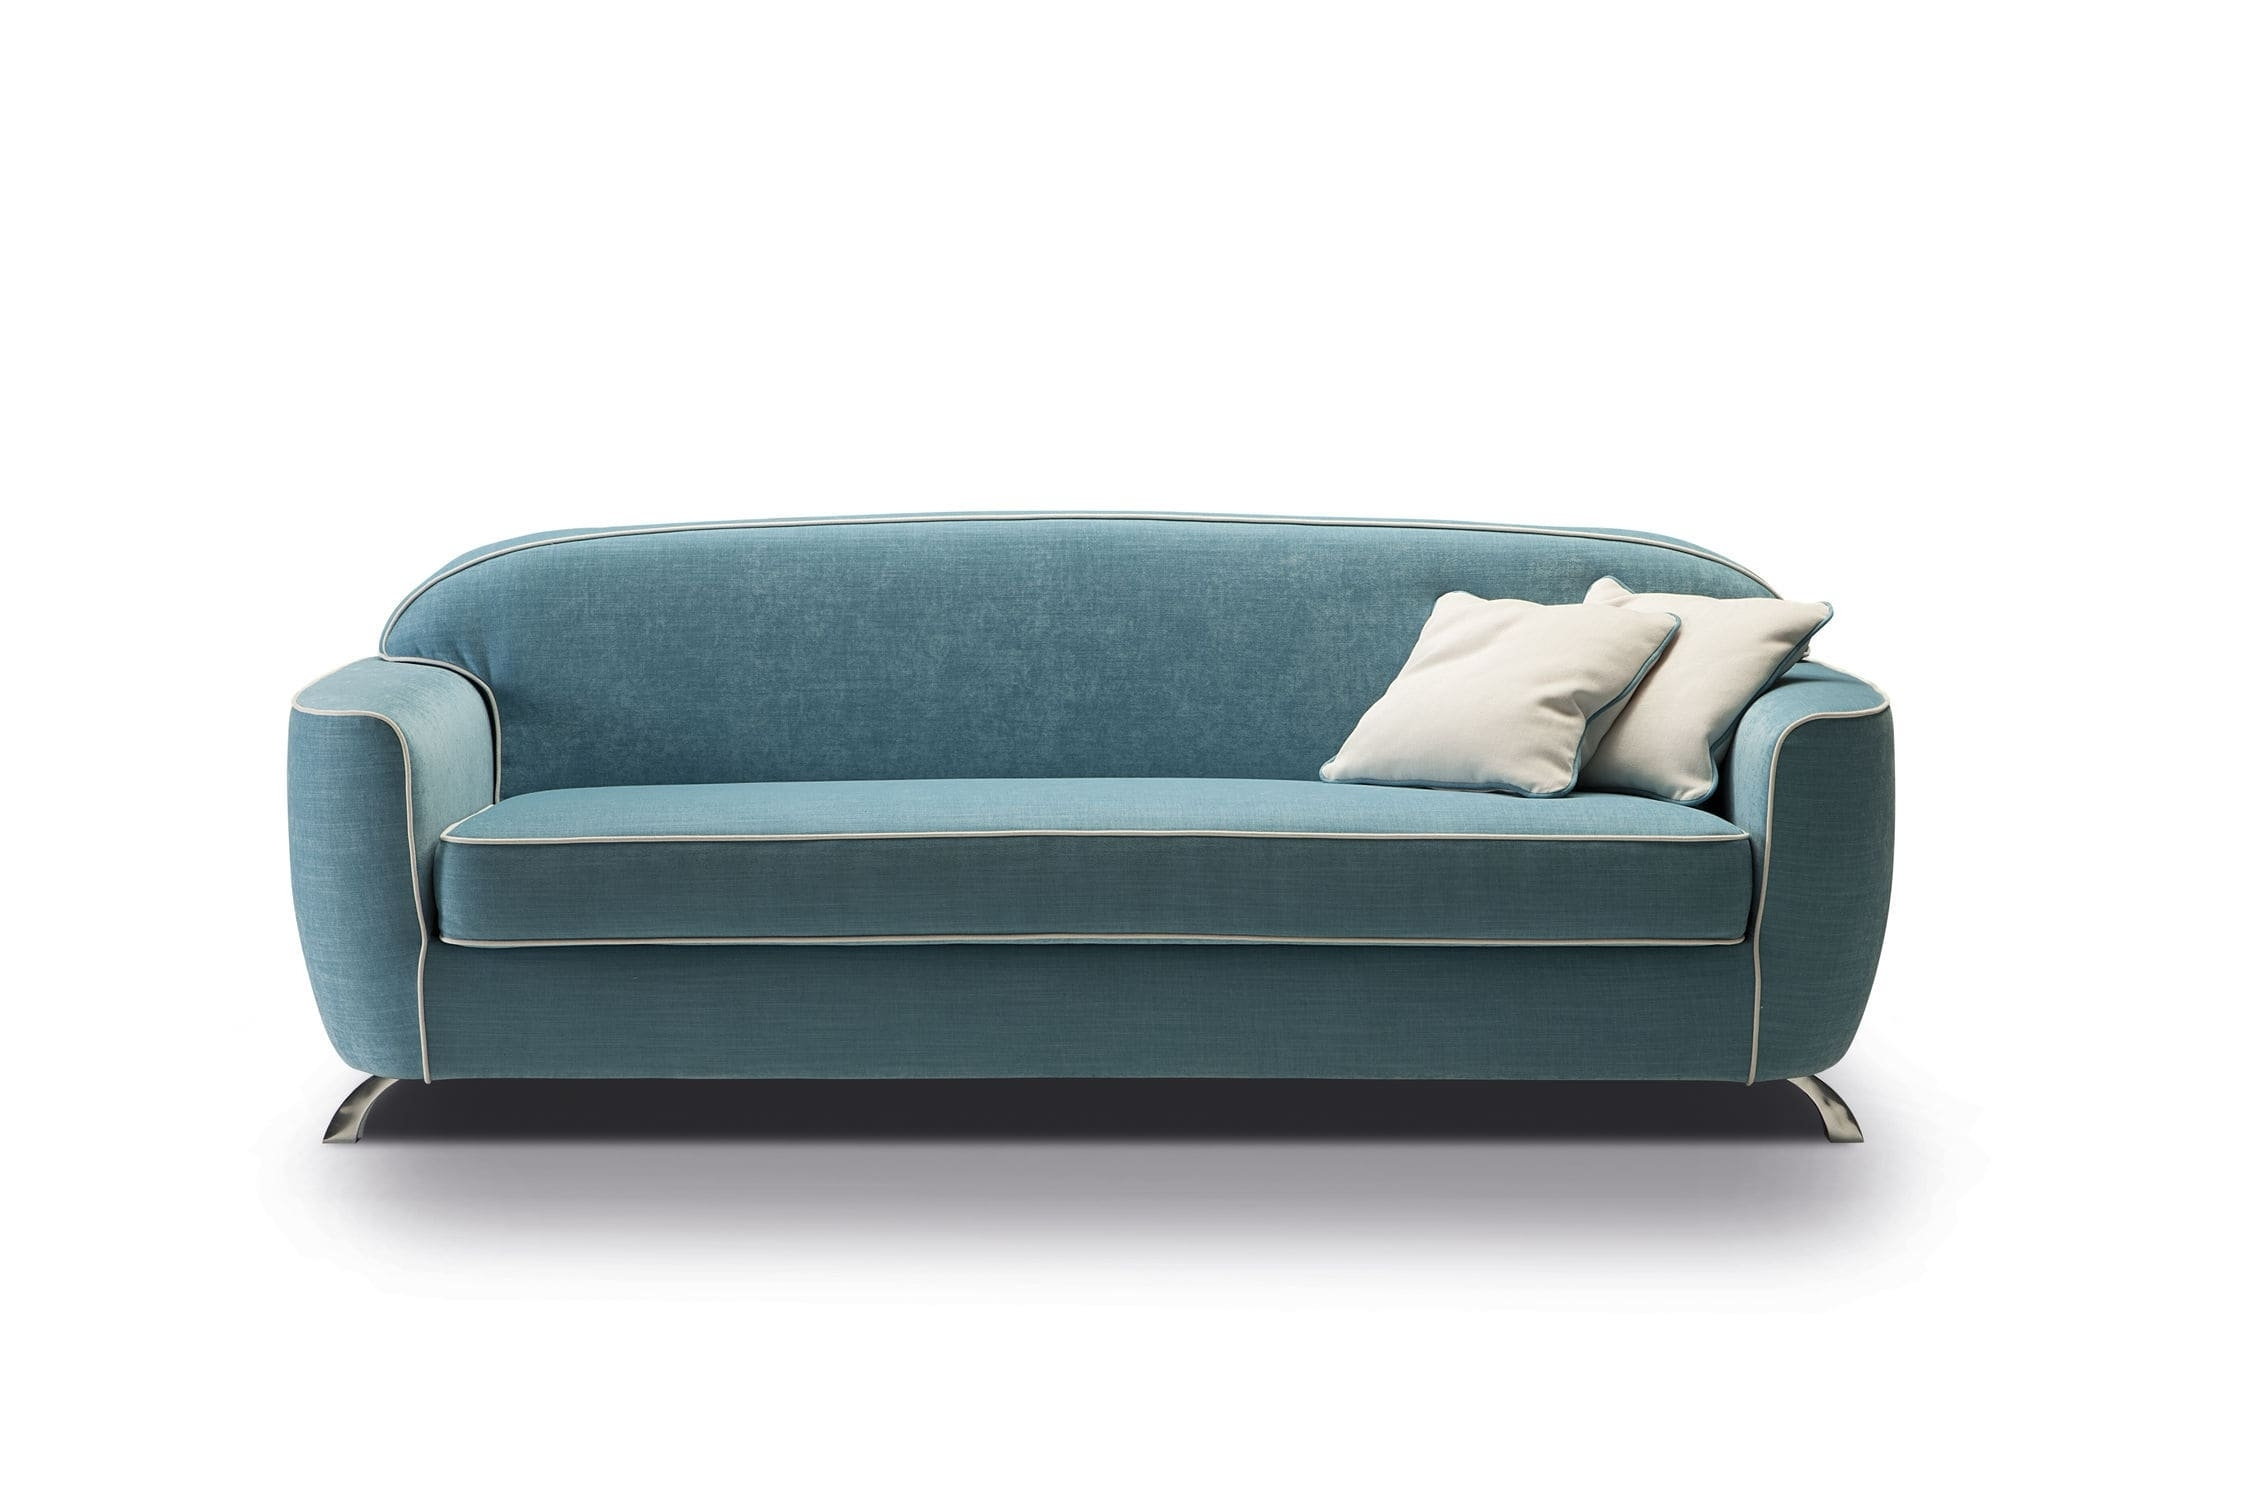 Sofa Bed / Contemporary / Fabric / With Washable Removable Cover Intended For Sofas With Removable Cover (View 10 of 10)